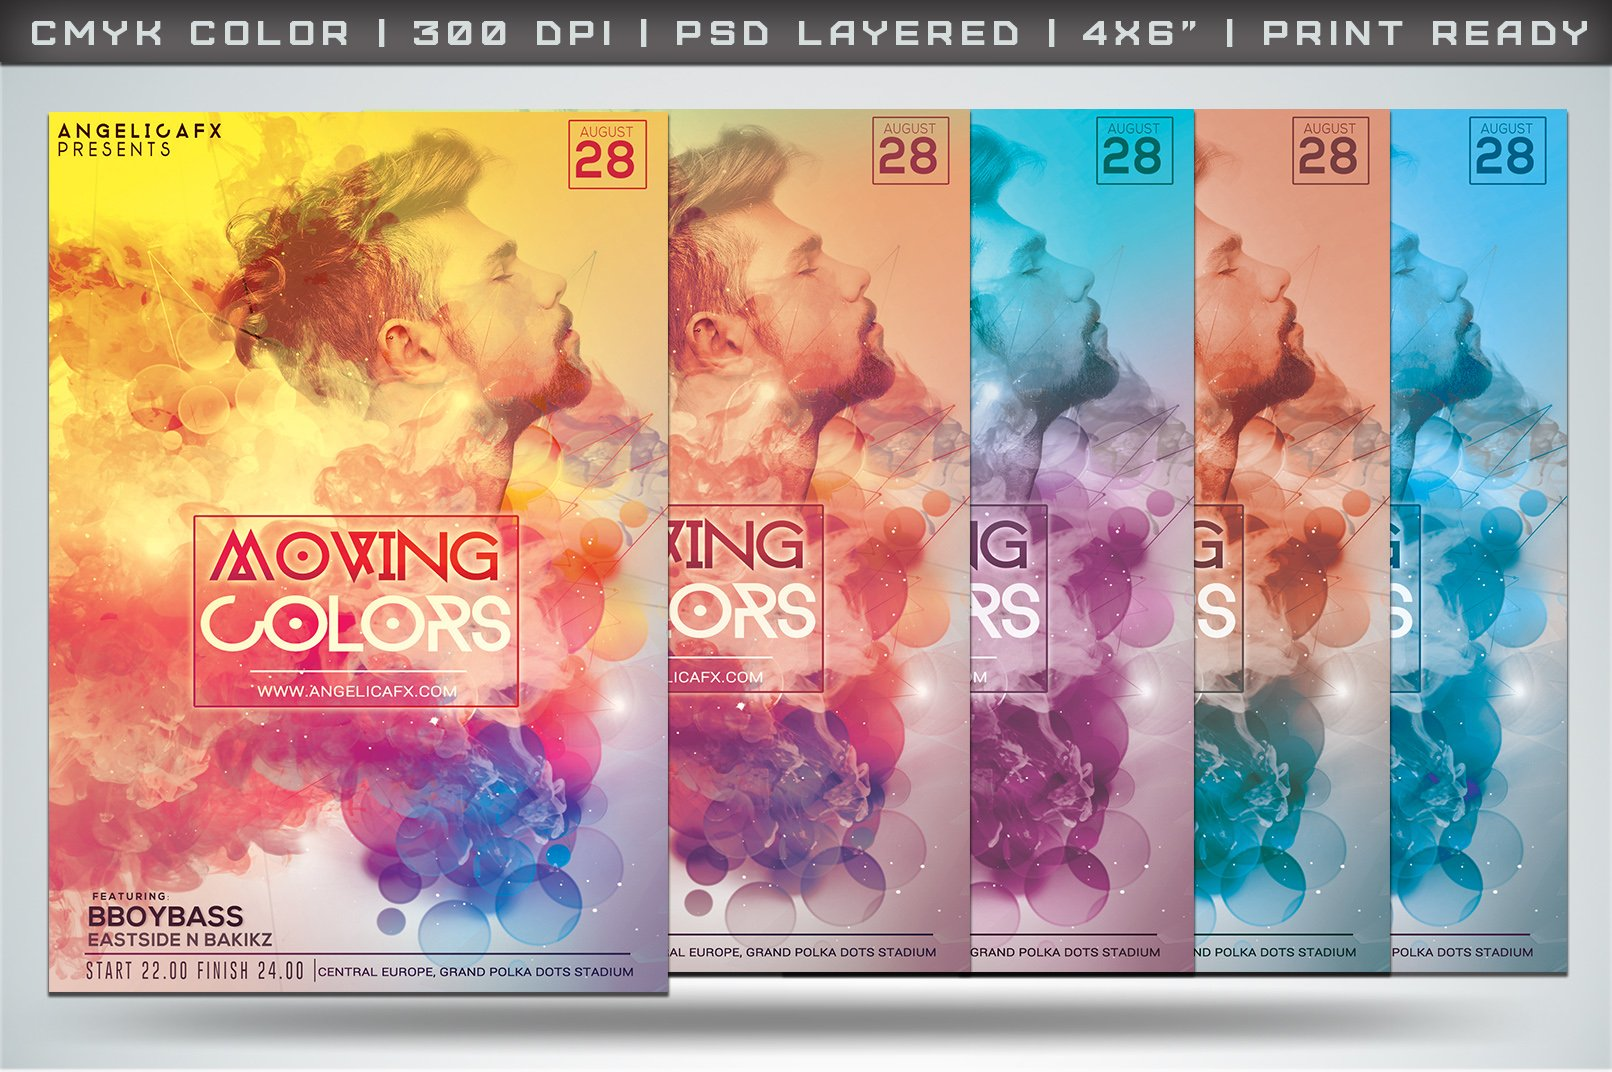 moving colors flyer templates creative market. Black Bedroom Furniture Sets. Home Design Ideas